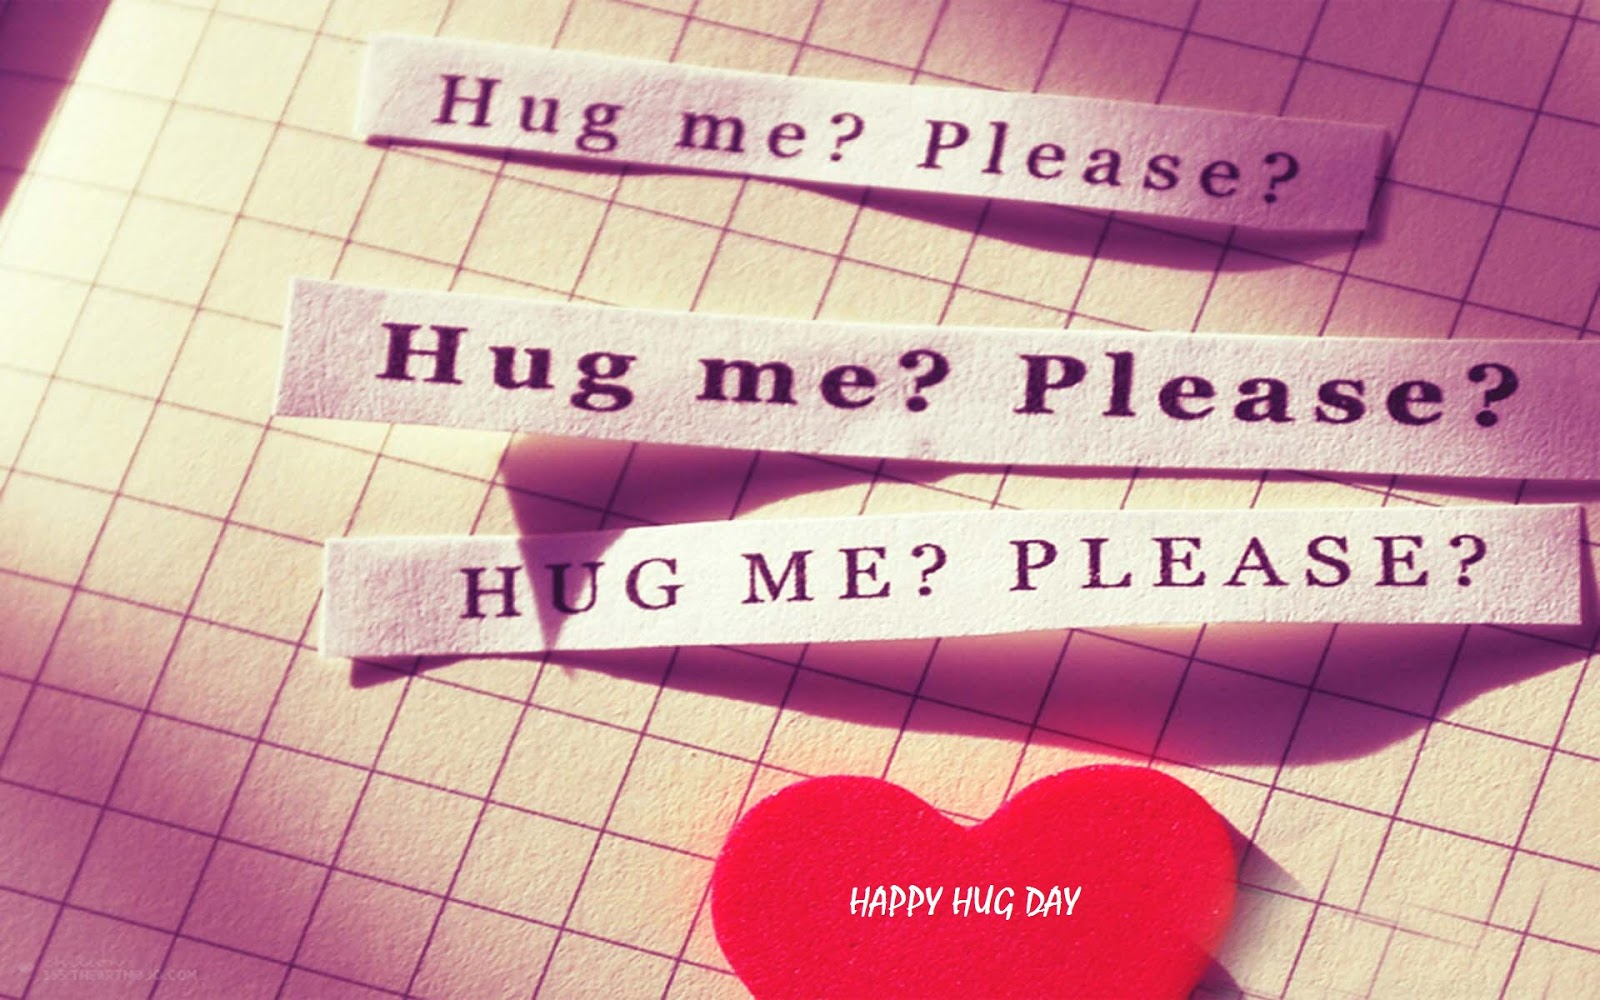 hug day special images